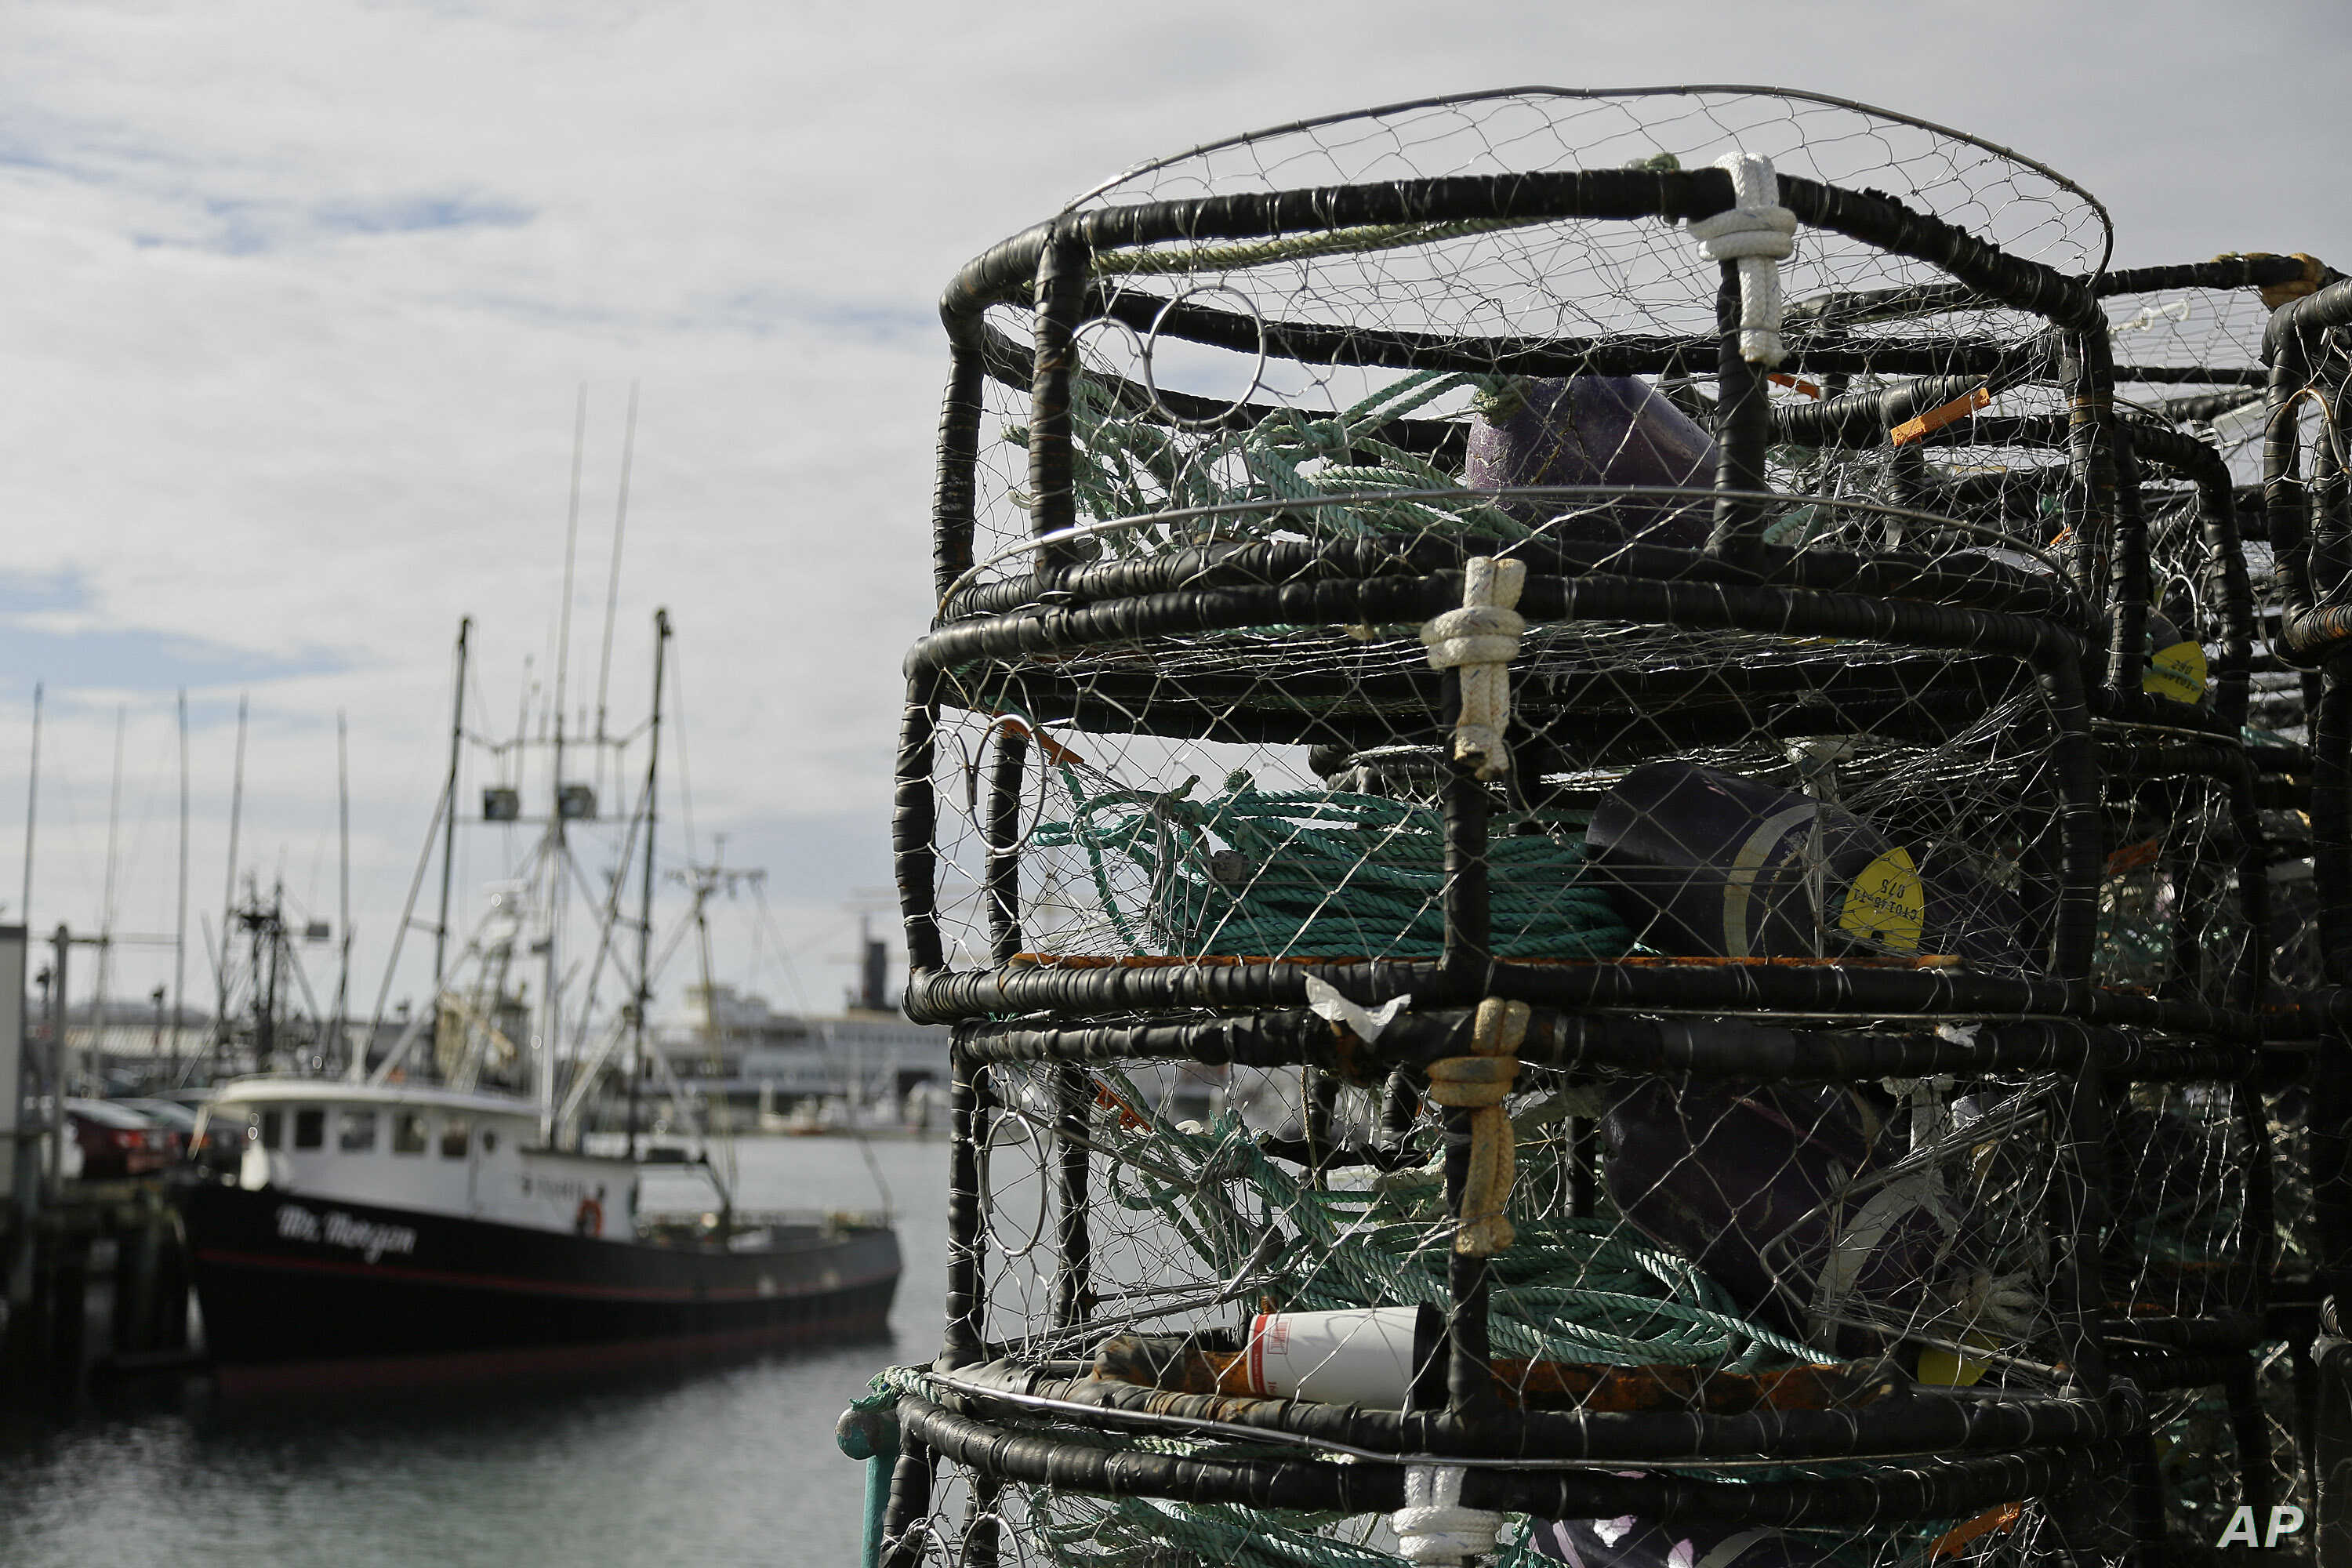 File - In this Nov. 5, 2015 file photo, crab pots are stacked along a pier at Fisherman's Wharf in San Francisco.